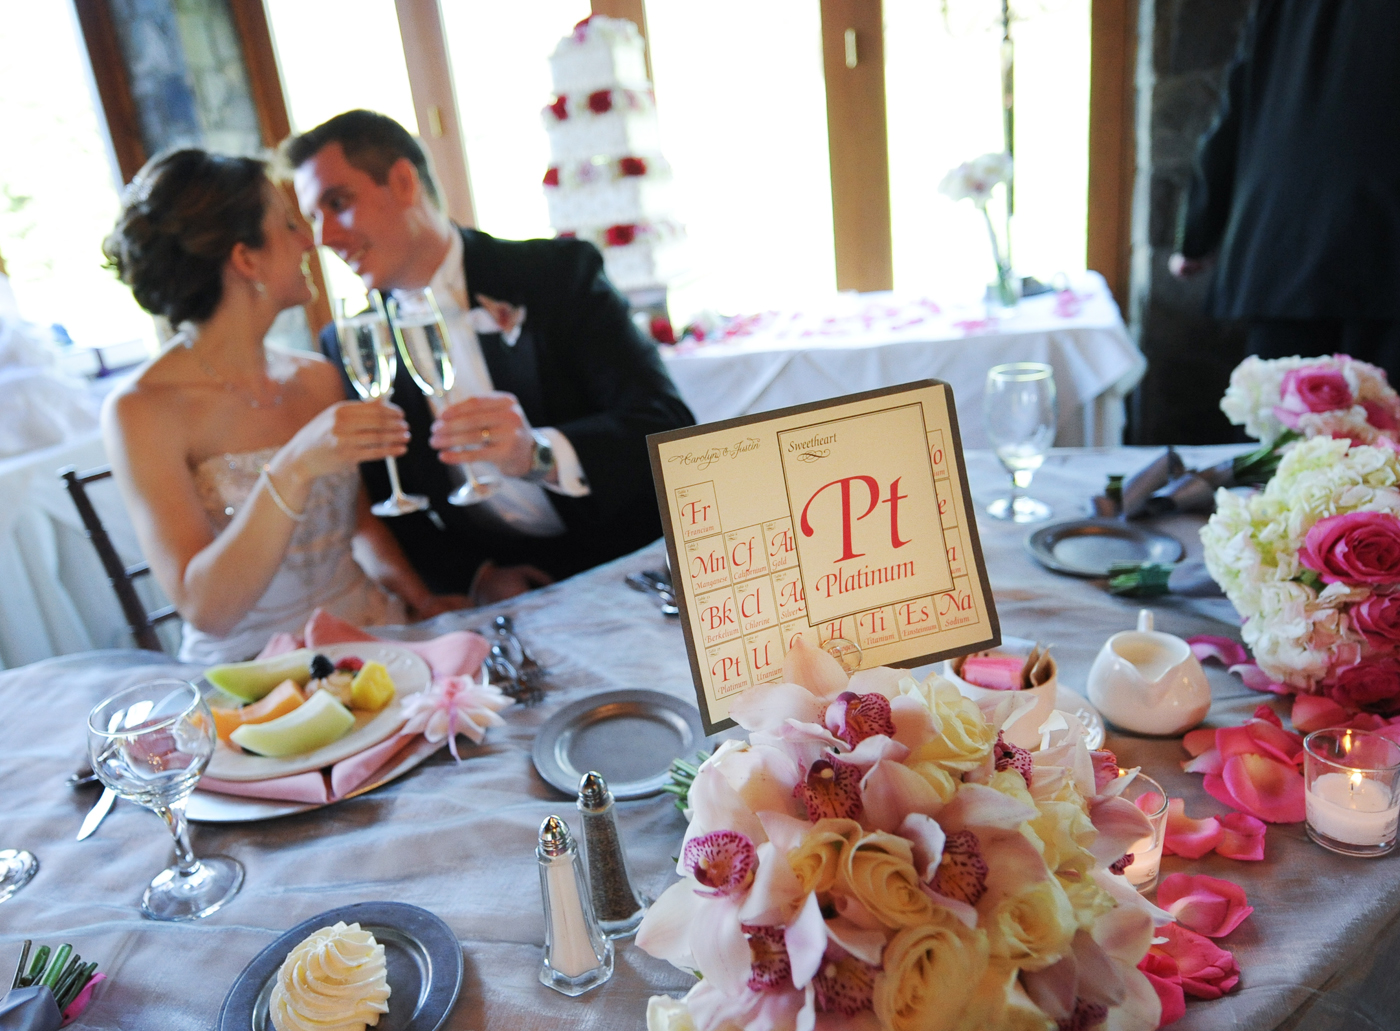 Wedding reception stationery periodic table theme papercake designs reception table cards gamestrikefo Choice Image